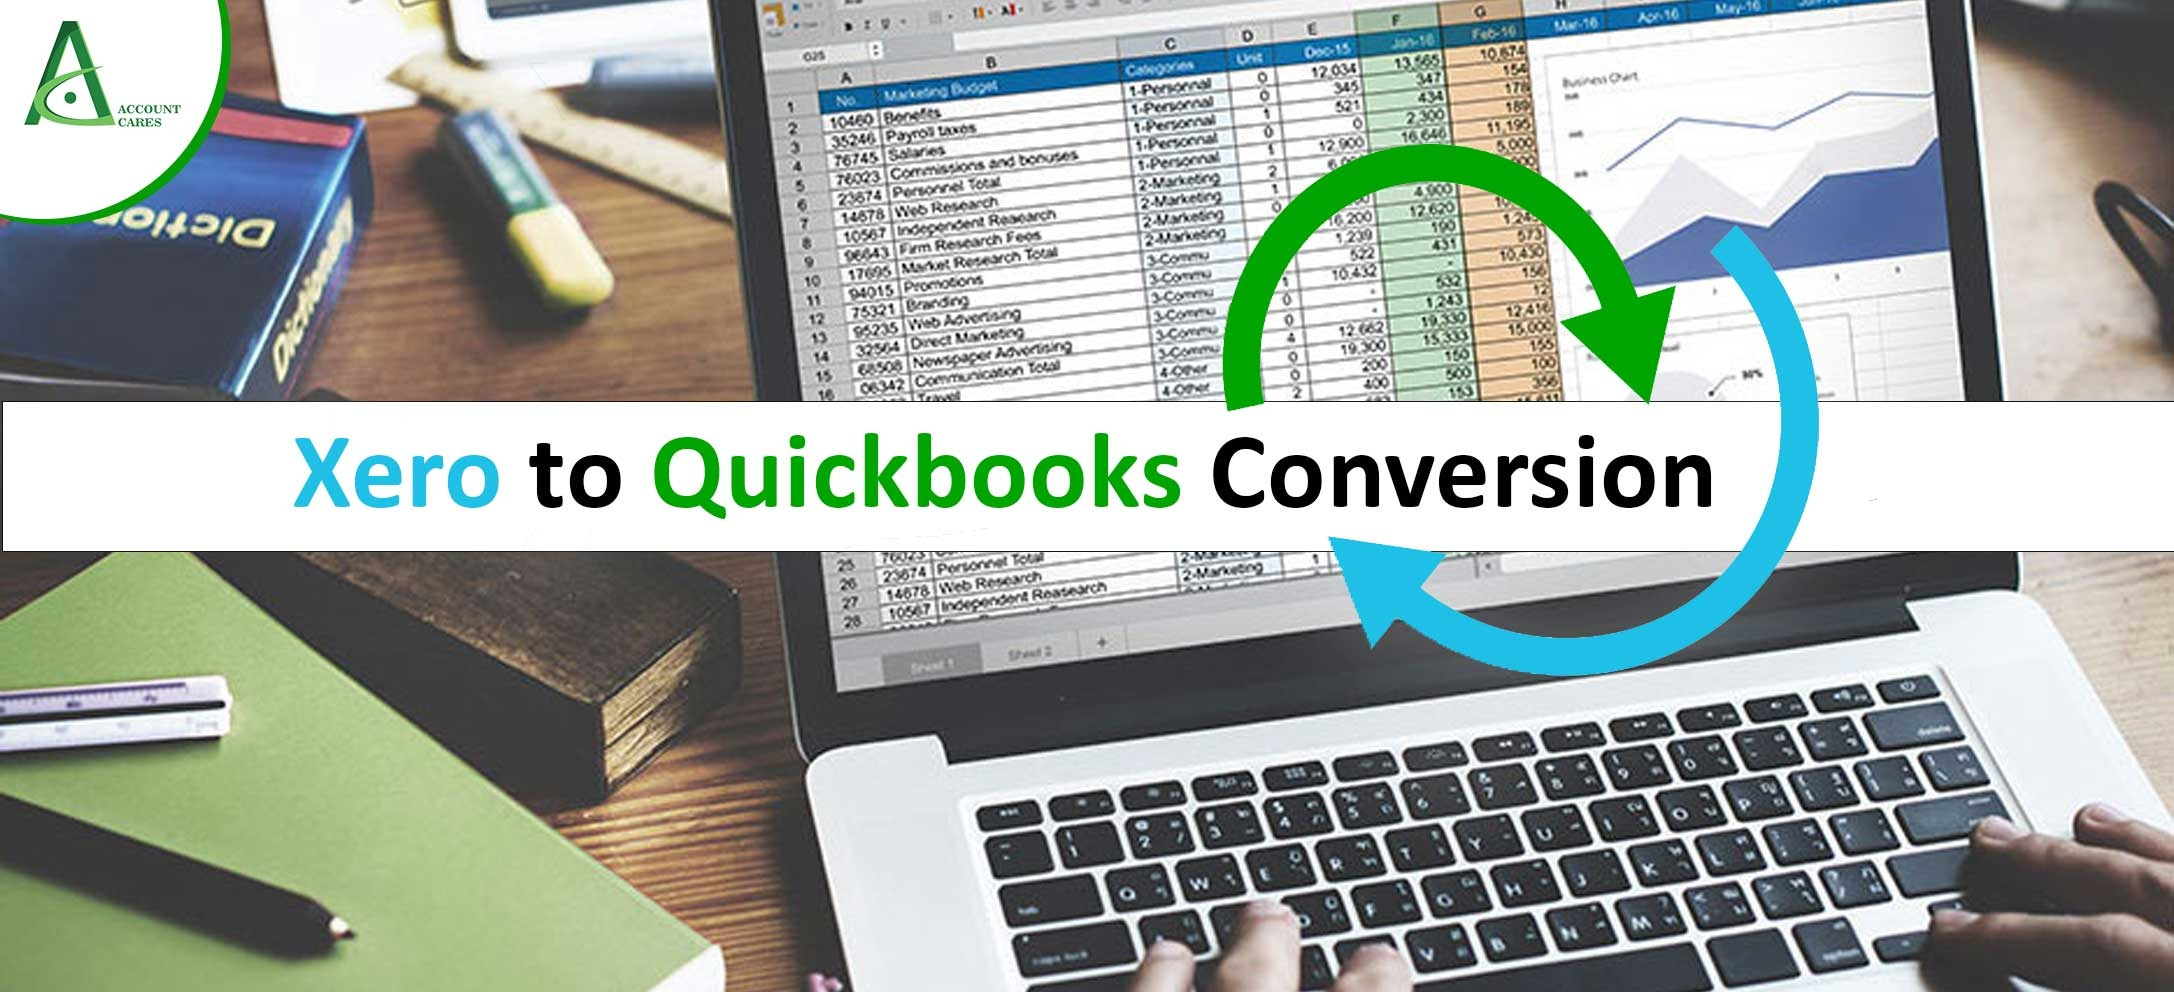 What is the best way to export from Xero to QuickBooks